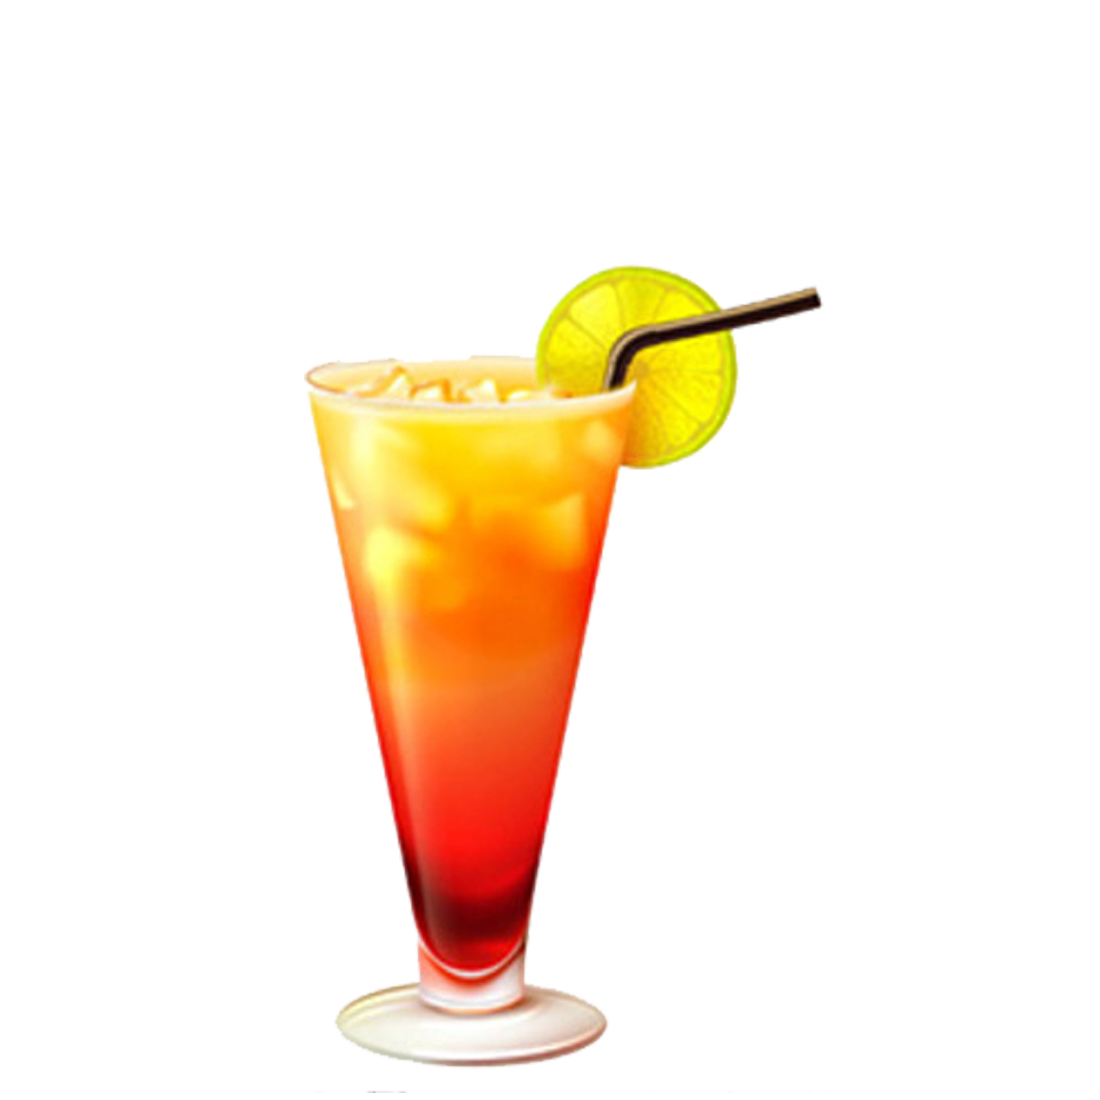 Tequila shot glass png. Sunrise cocktail free drink